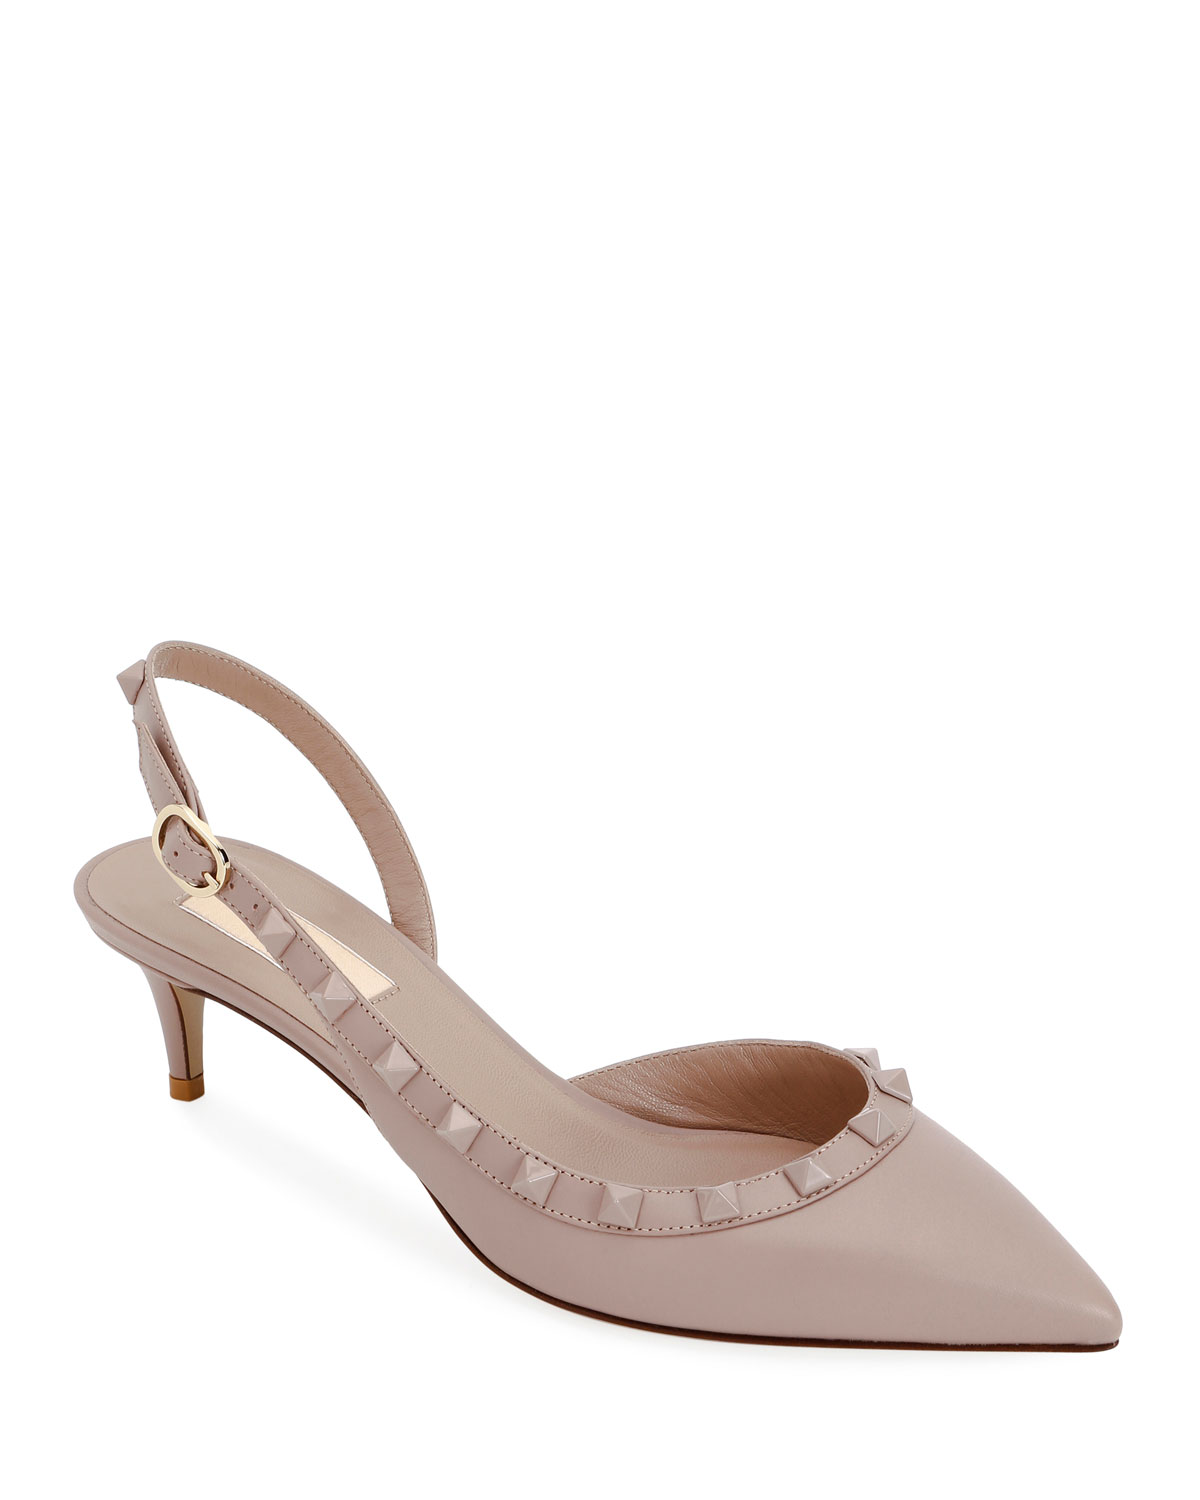 a9b3e0aabc8 Valentino Garavani Rockstud Low-Heel Leather Slingback Pumps ...